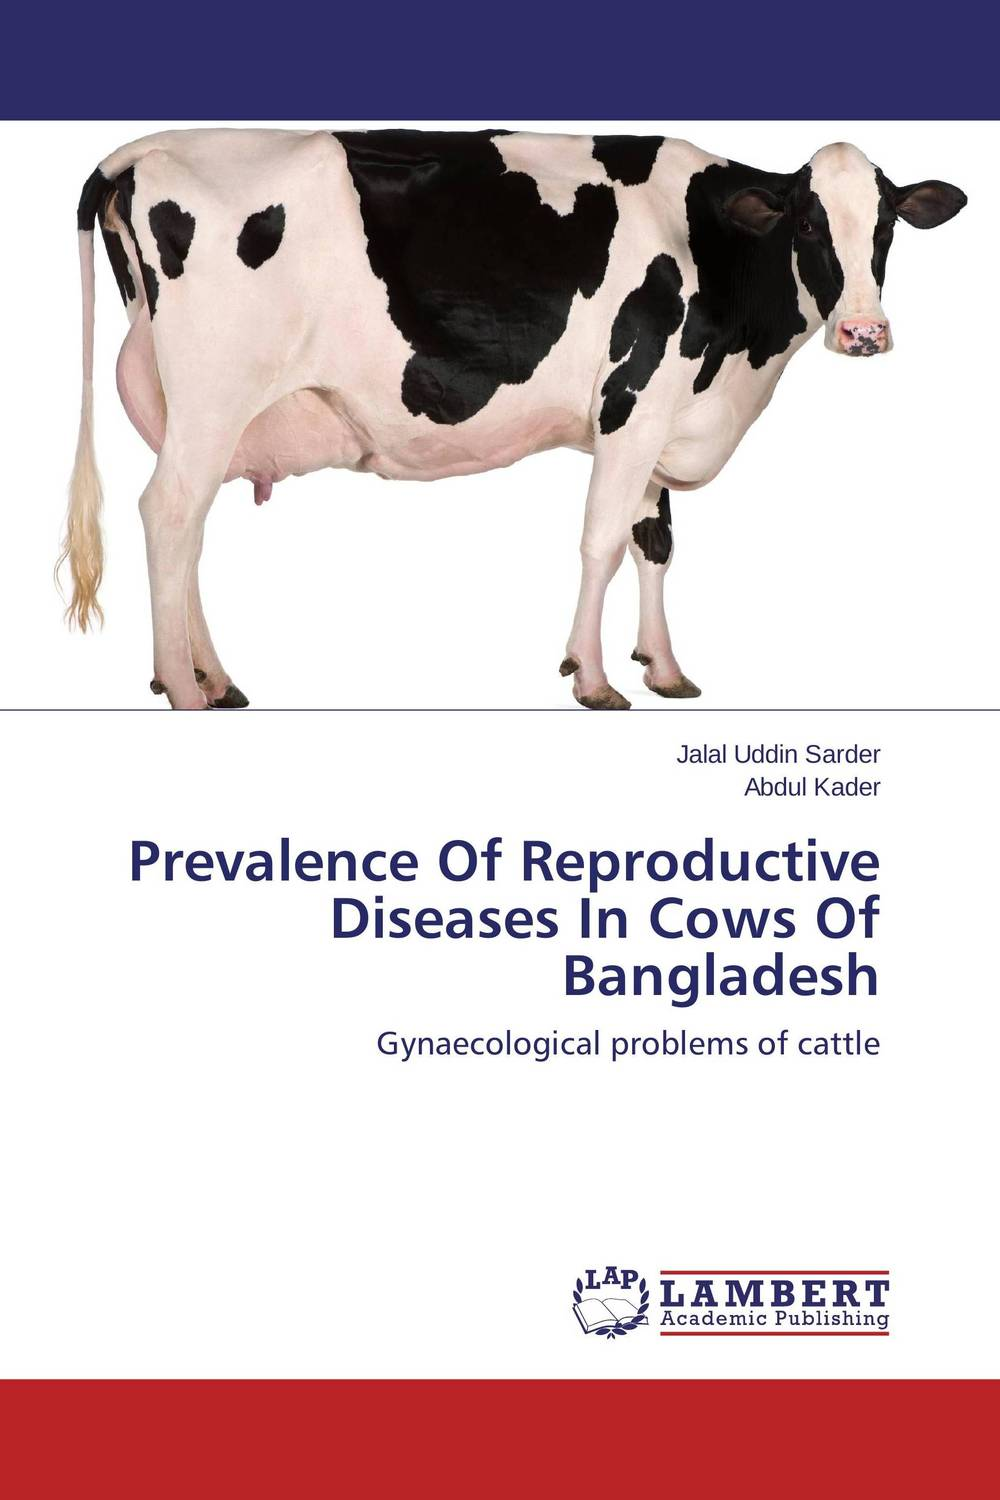 Prevalence Of Reproductive Diseases In Cows Of Bangladesh claw disorders in dairy cows under smallholder zero grazing units